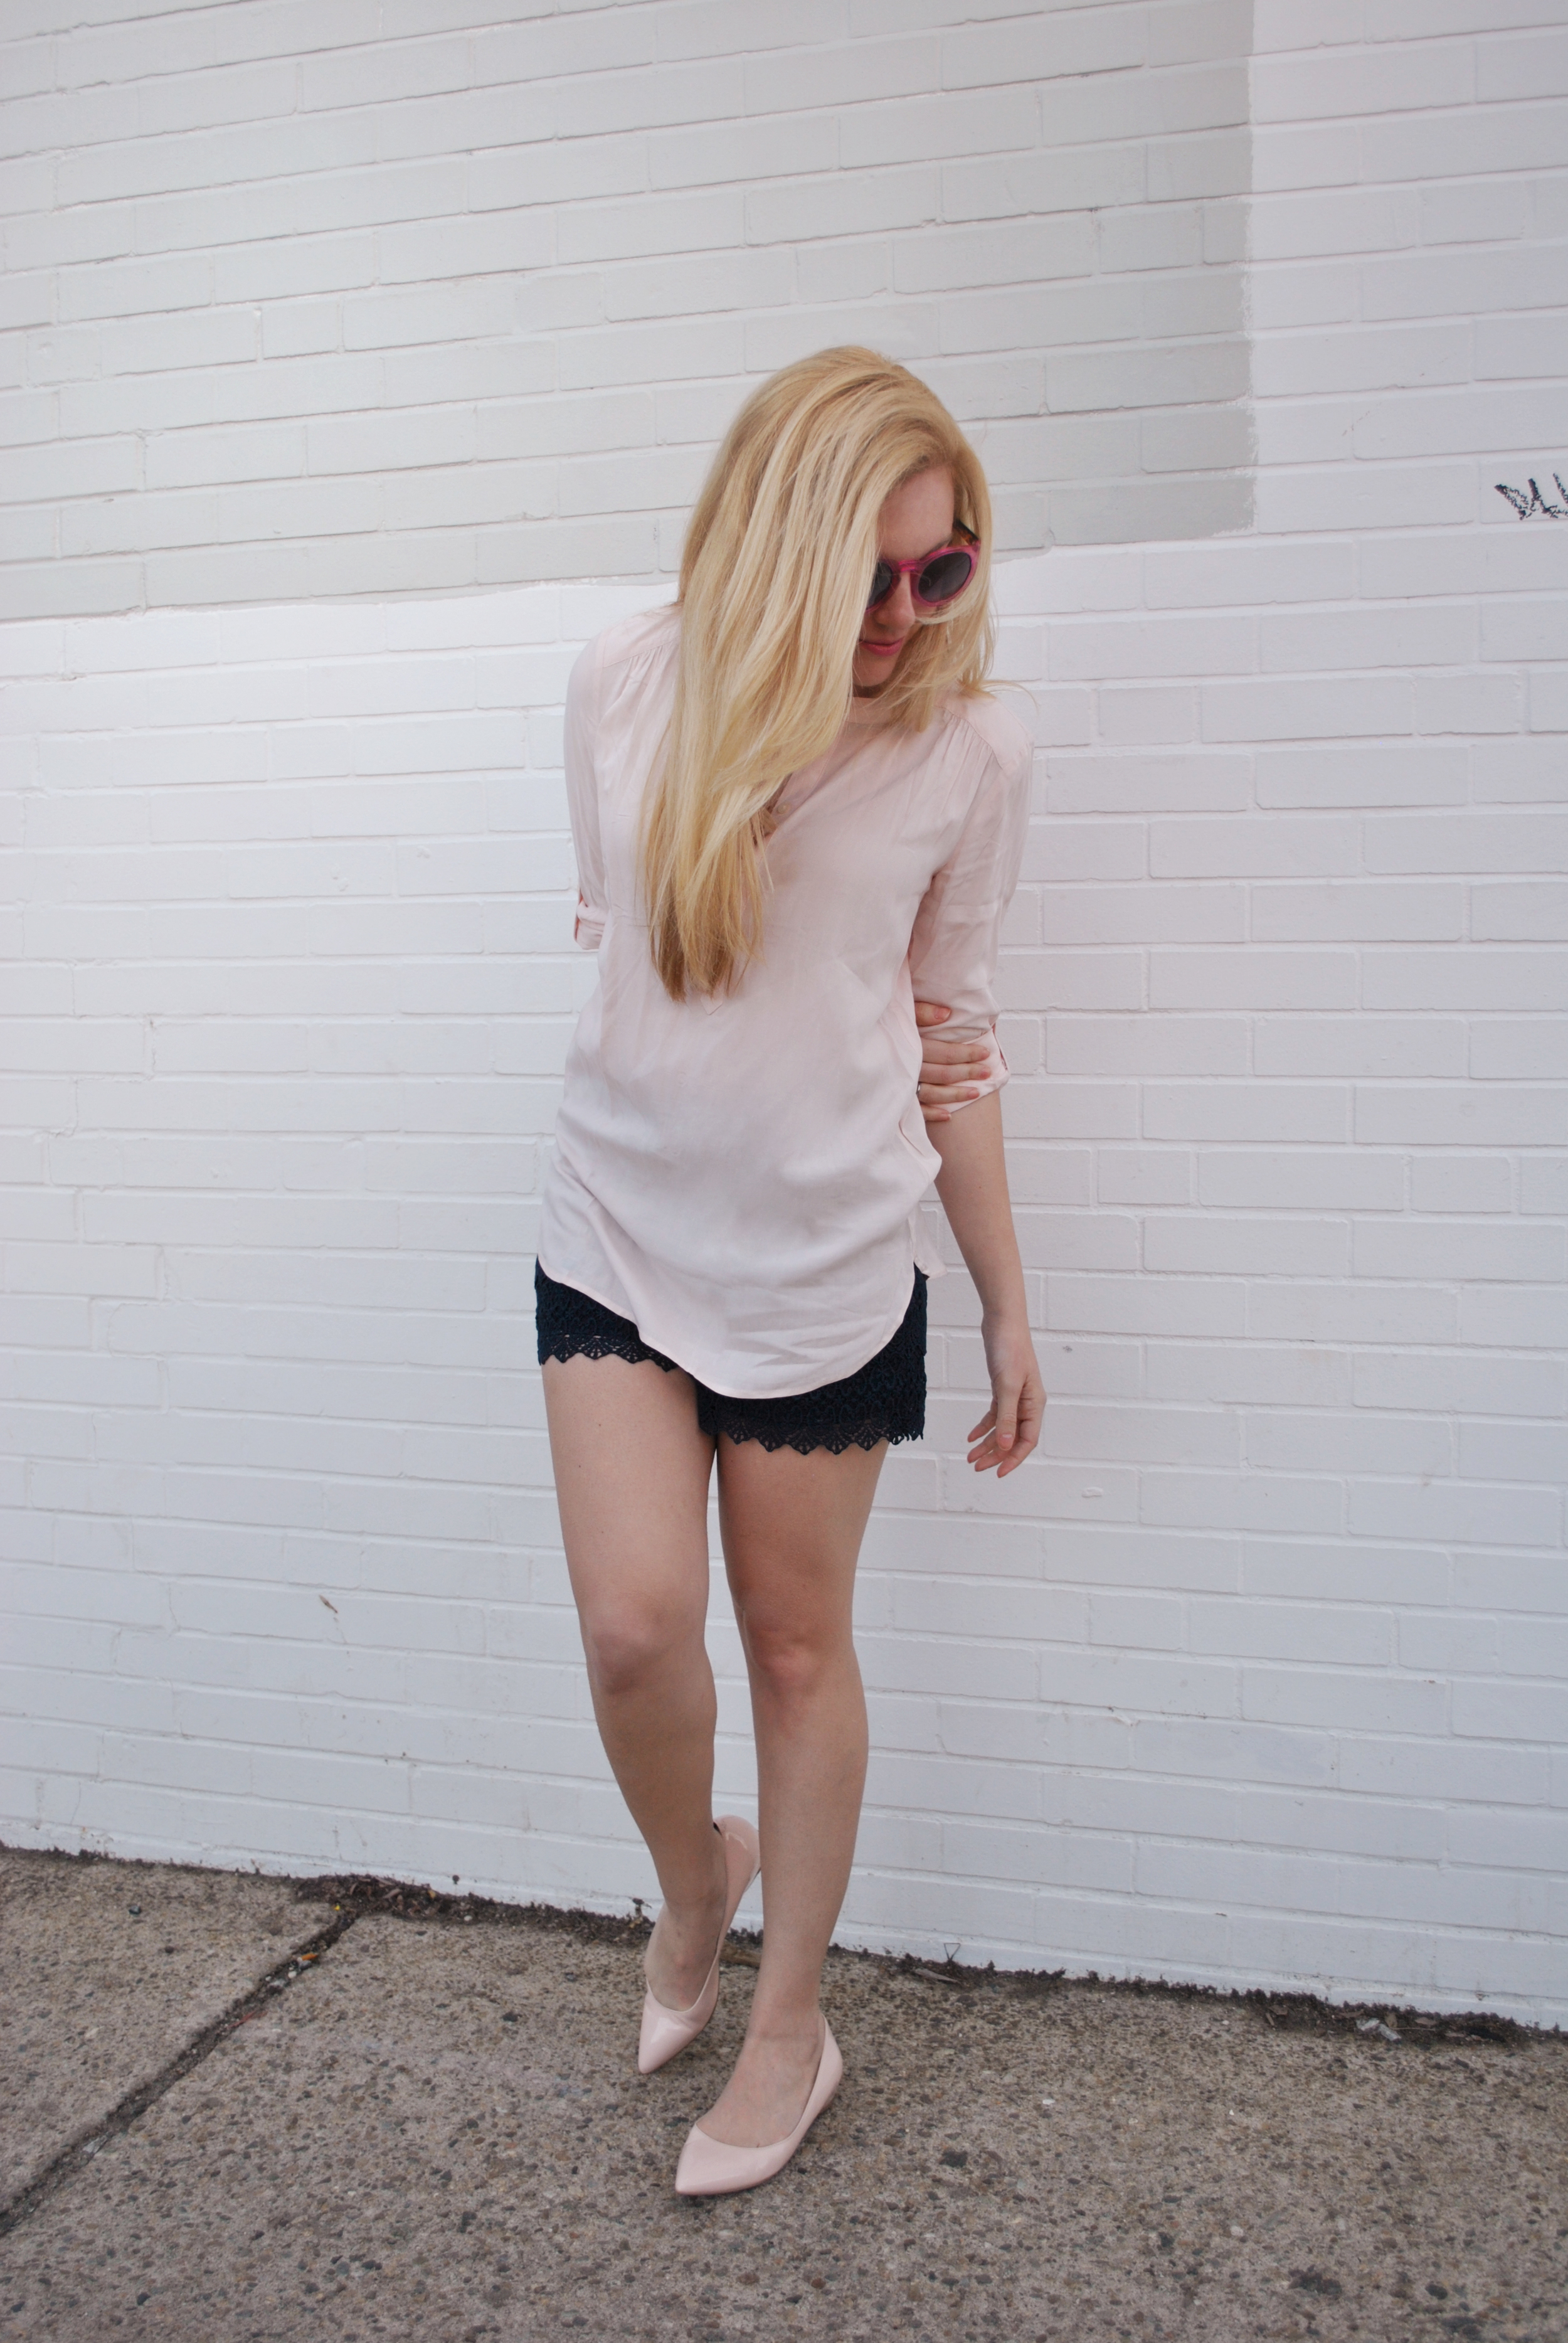 thoughtfulwish | ootd // fashion blogger // silk top // summer top // crochet shorts // the loft // boston blogger // preppy outfit // meredith wish